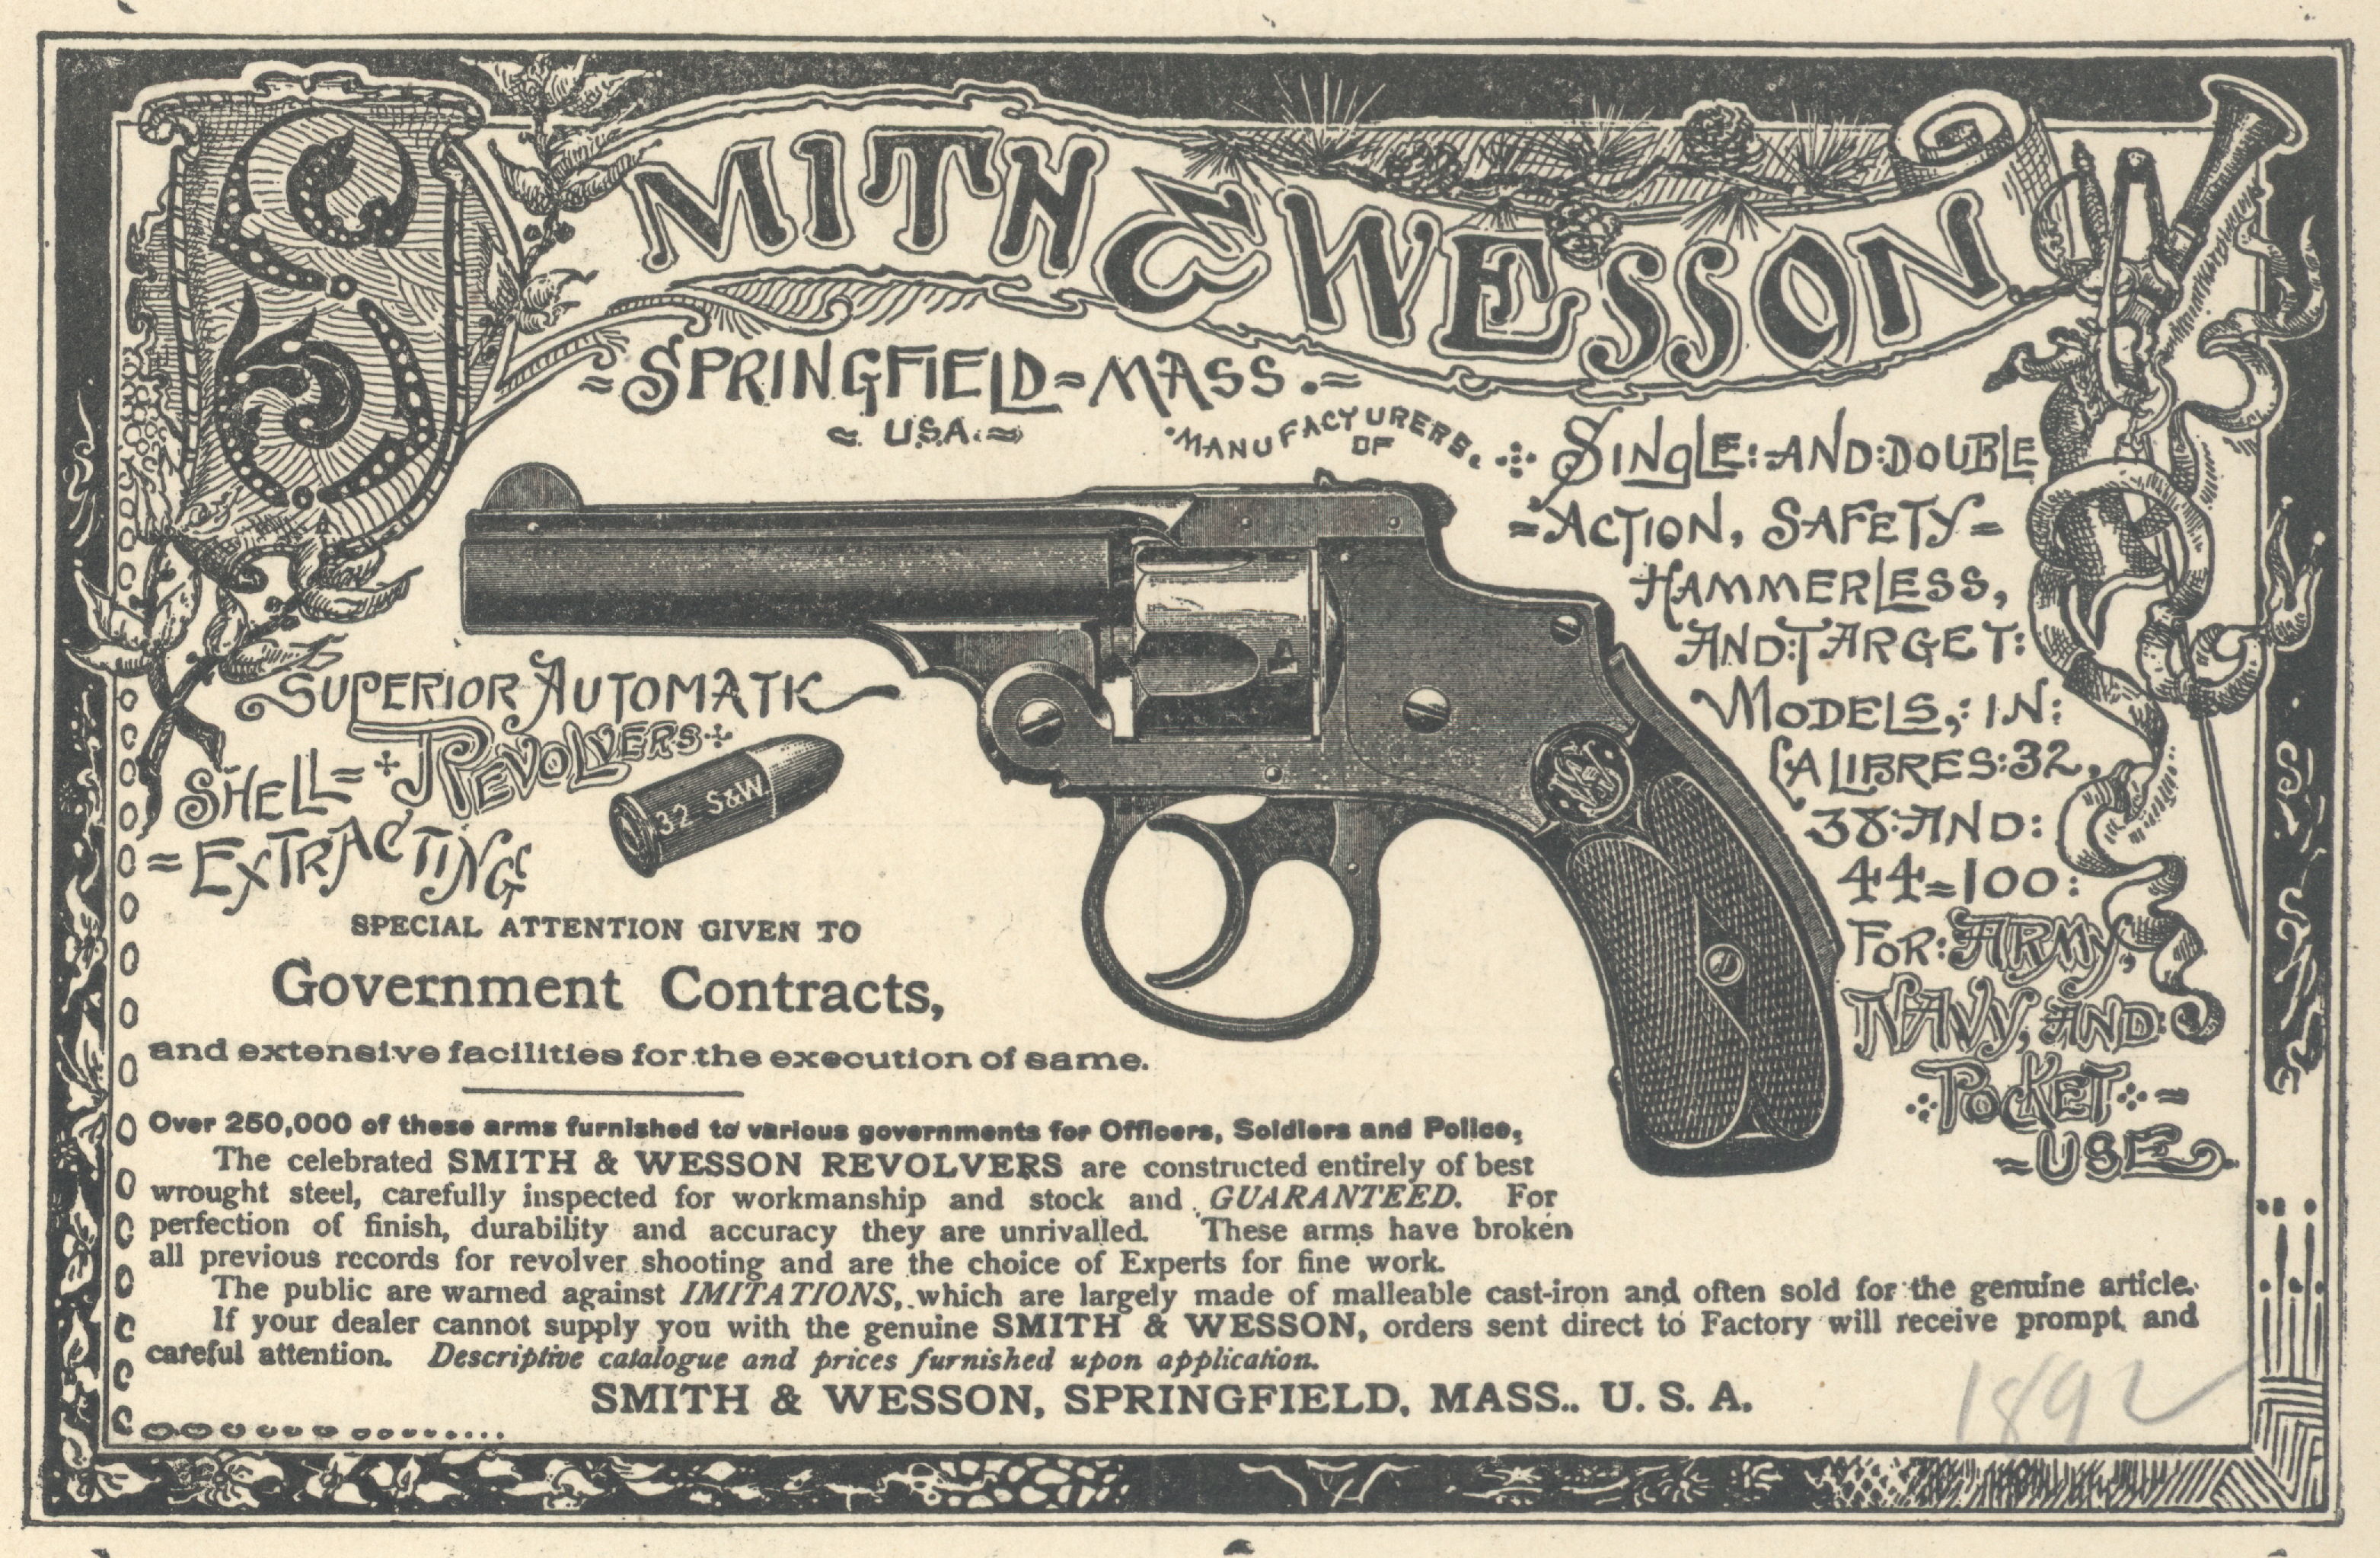 smith and wesson bodyguard 38 special serial number